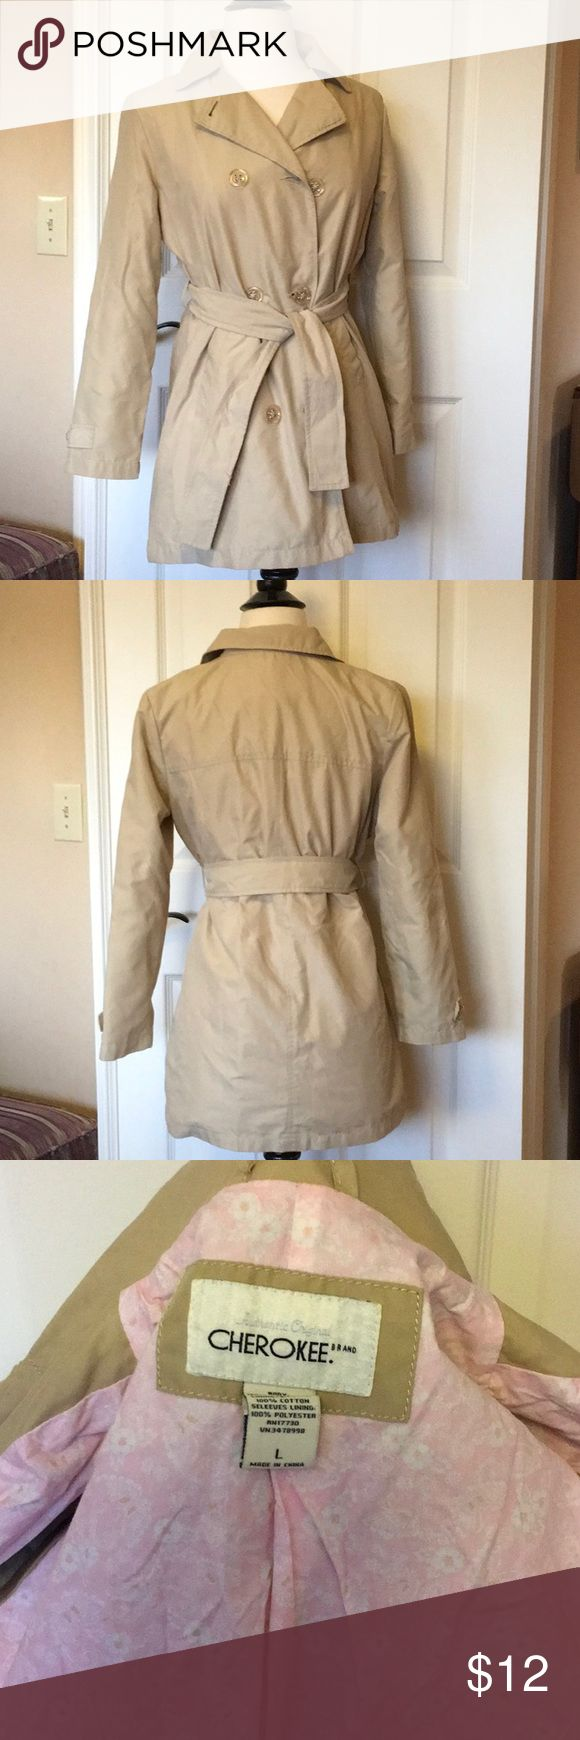 Girls Trench button and tie coat jacket Awesome trench coat by Cherokee. Outer 100% polyester, lining 100% cotton Lined in a cute pink floral print.  Excellent condition Cherokee Jackets & Coats Pea Coats